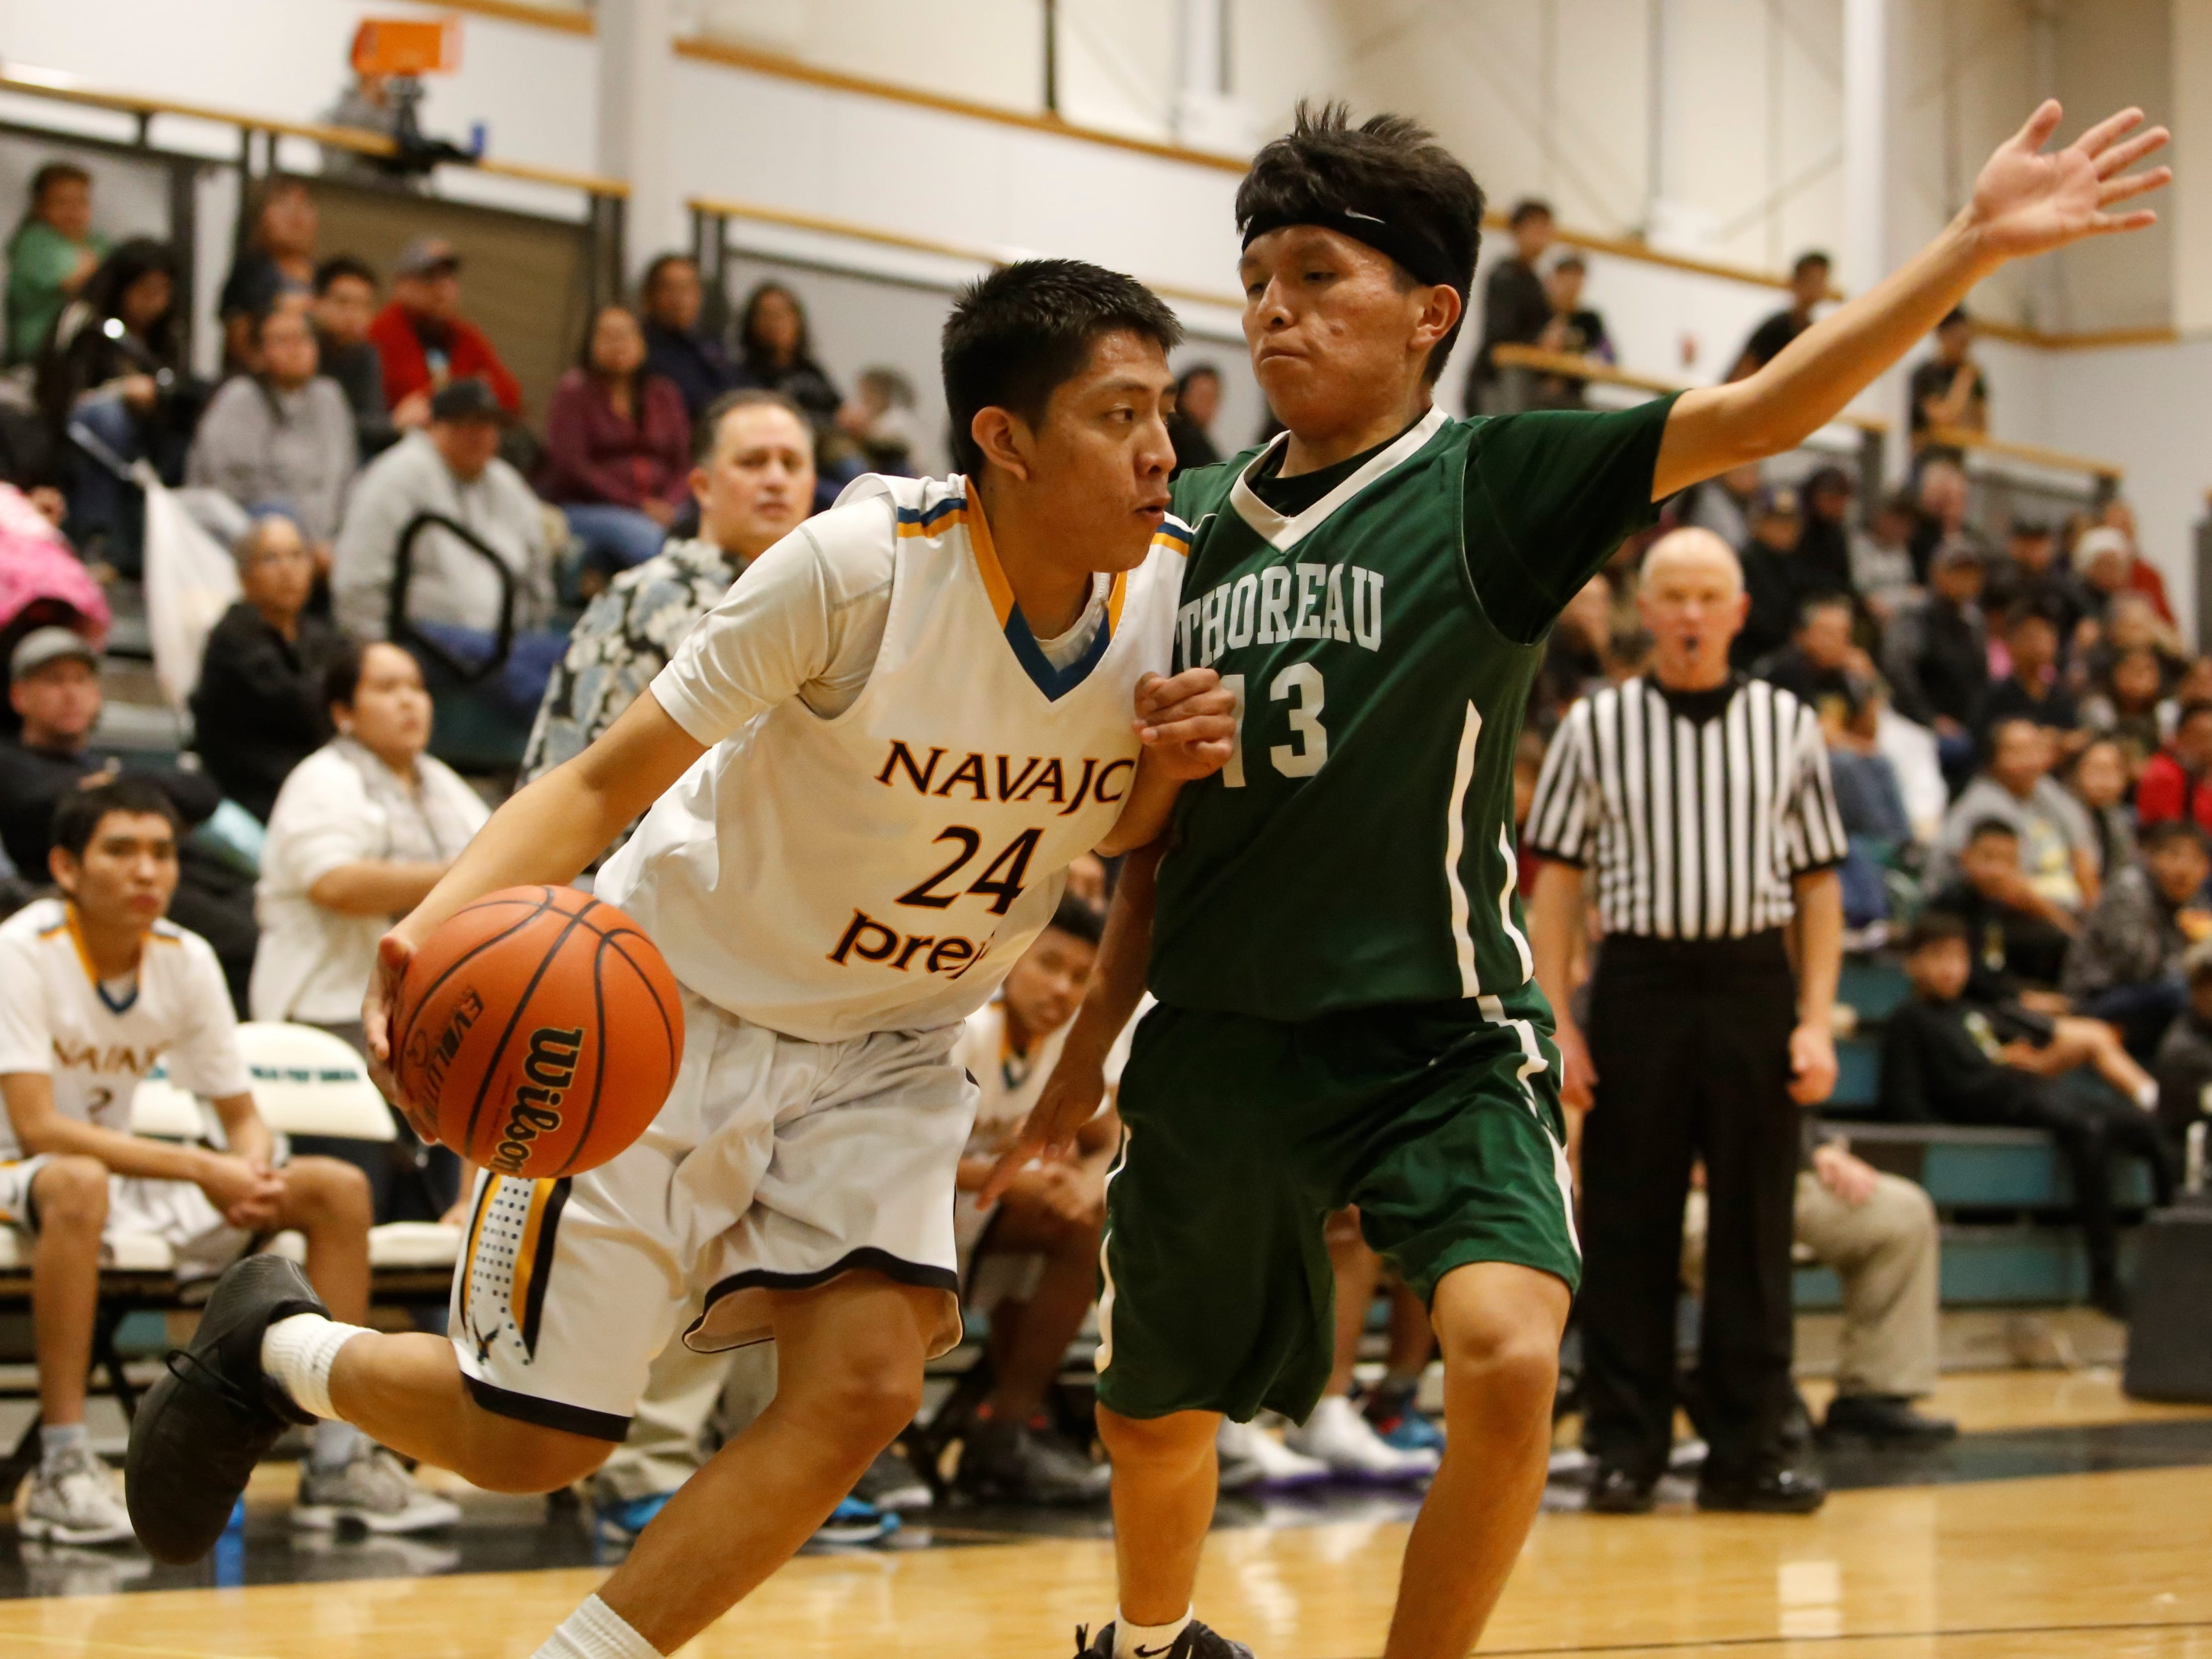 Navajo Prep's Treston Yazzie drives along the baseline against Thoreau's Orin Chacho during Wednesday's District 1-3A game at the Eagles Nest in Farmington.